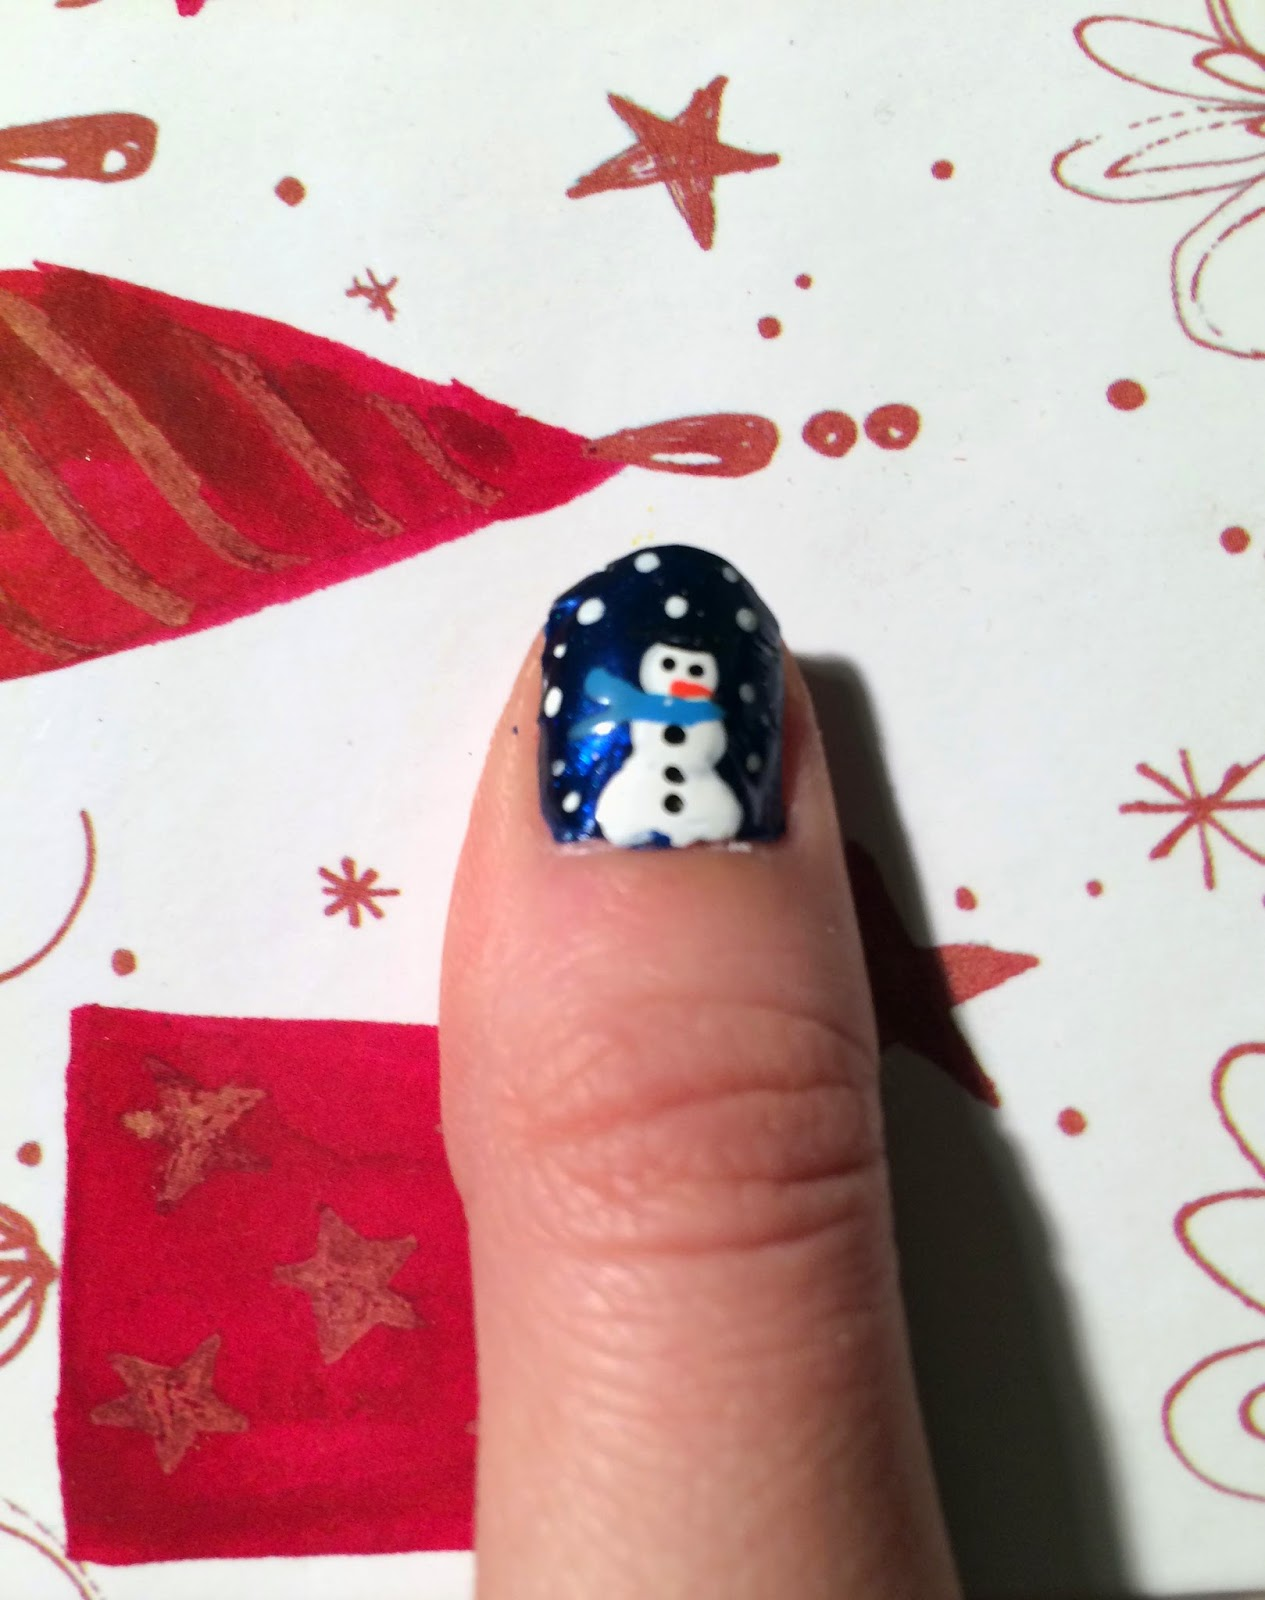 12 Days of Festive Nails: Day 5 - Simple Snowman - Beauty by Birdy